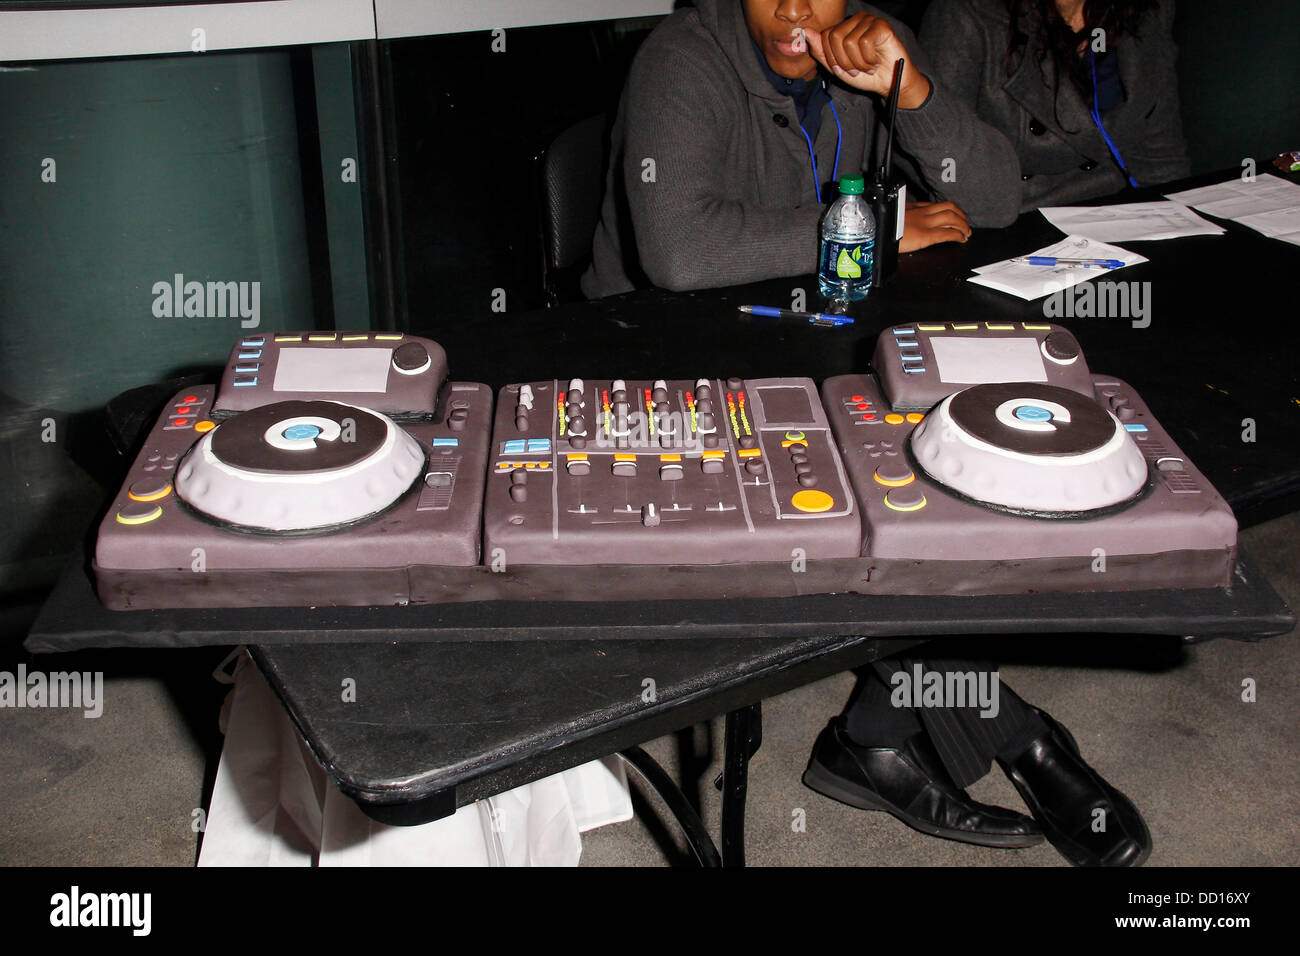 Cool A Dj Turntable Themed Cake Is Brought Out Connor Cruises 17Th Birthday Cards Printable Benkemecafe Filternl